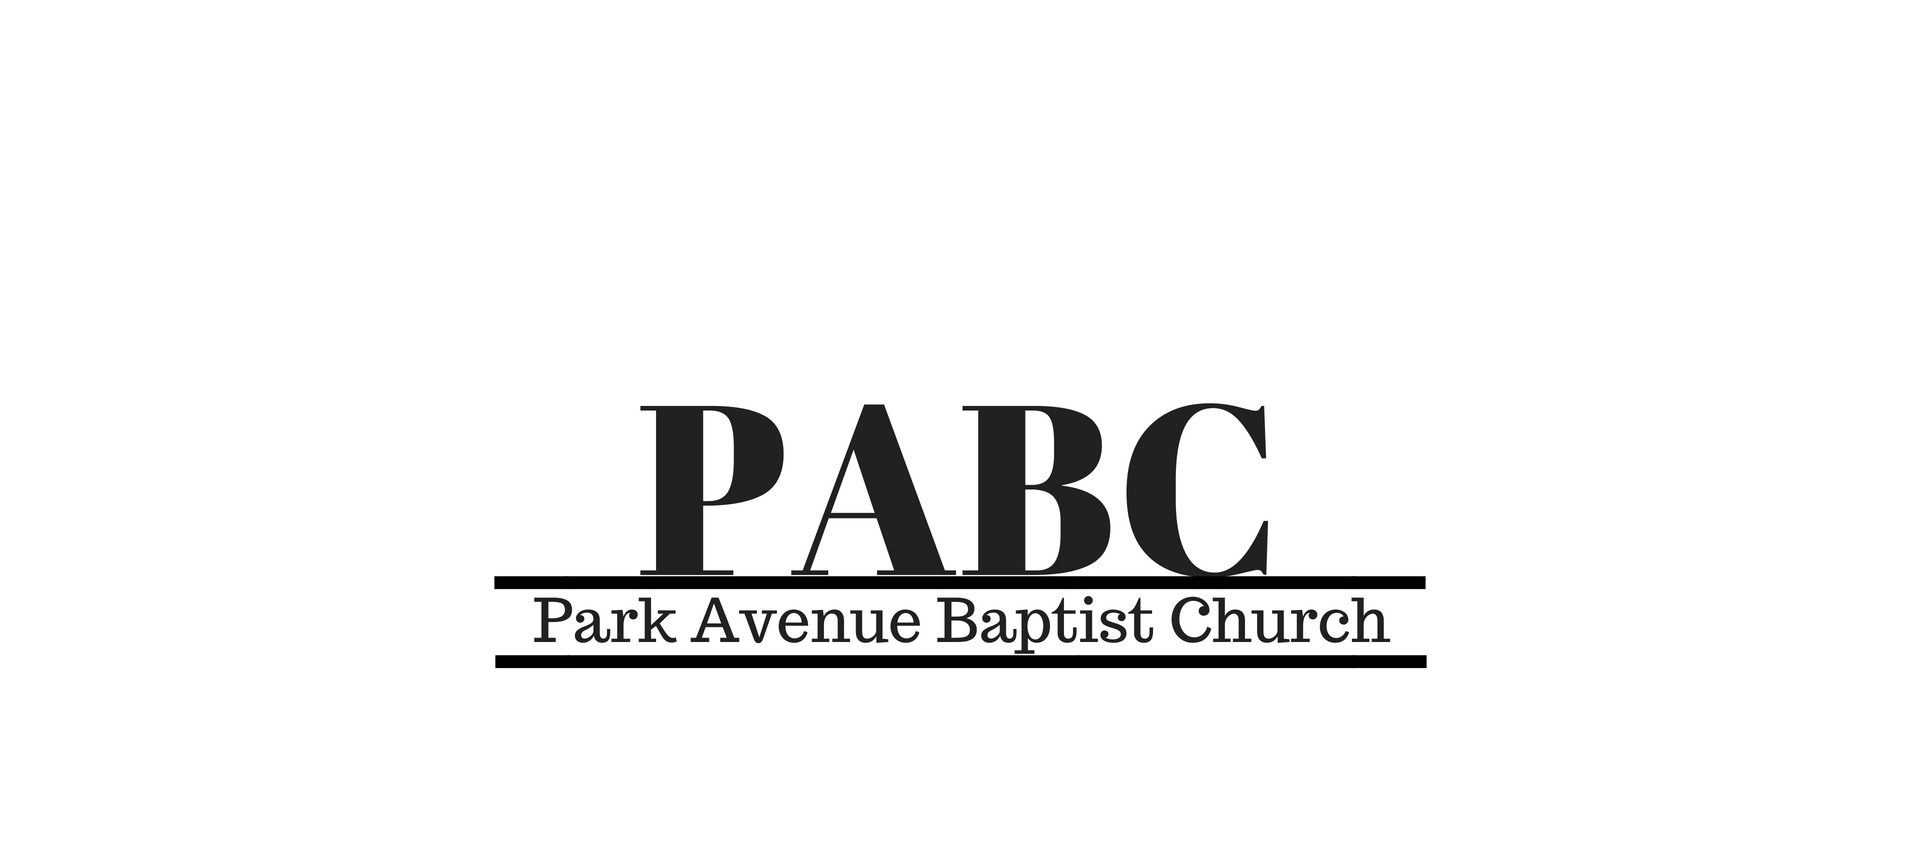 Welcome to Park Avenue Baptist Church